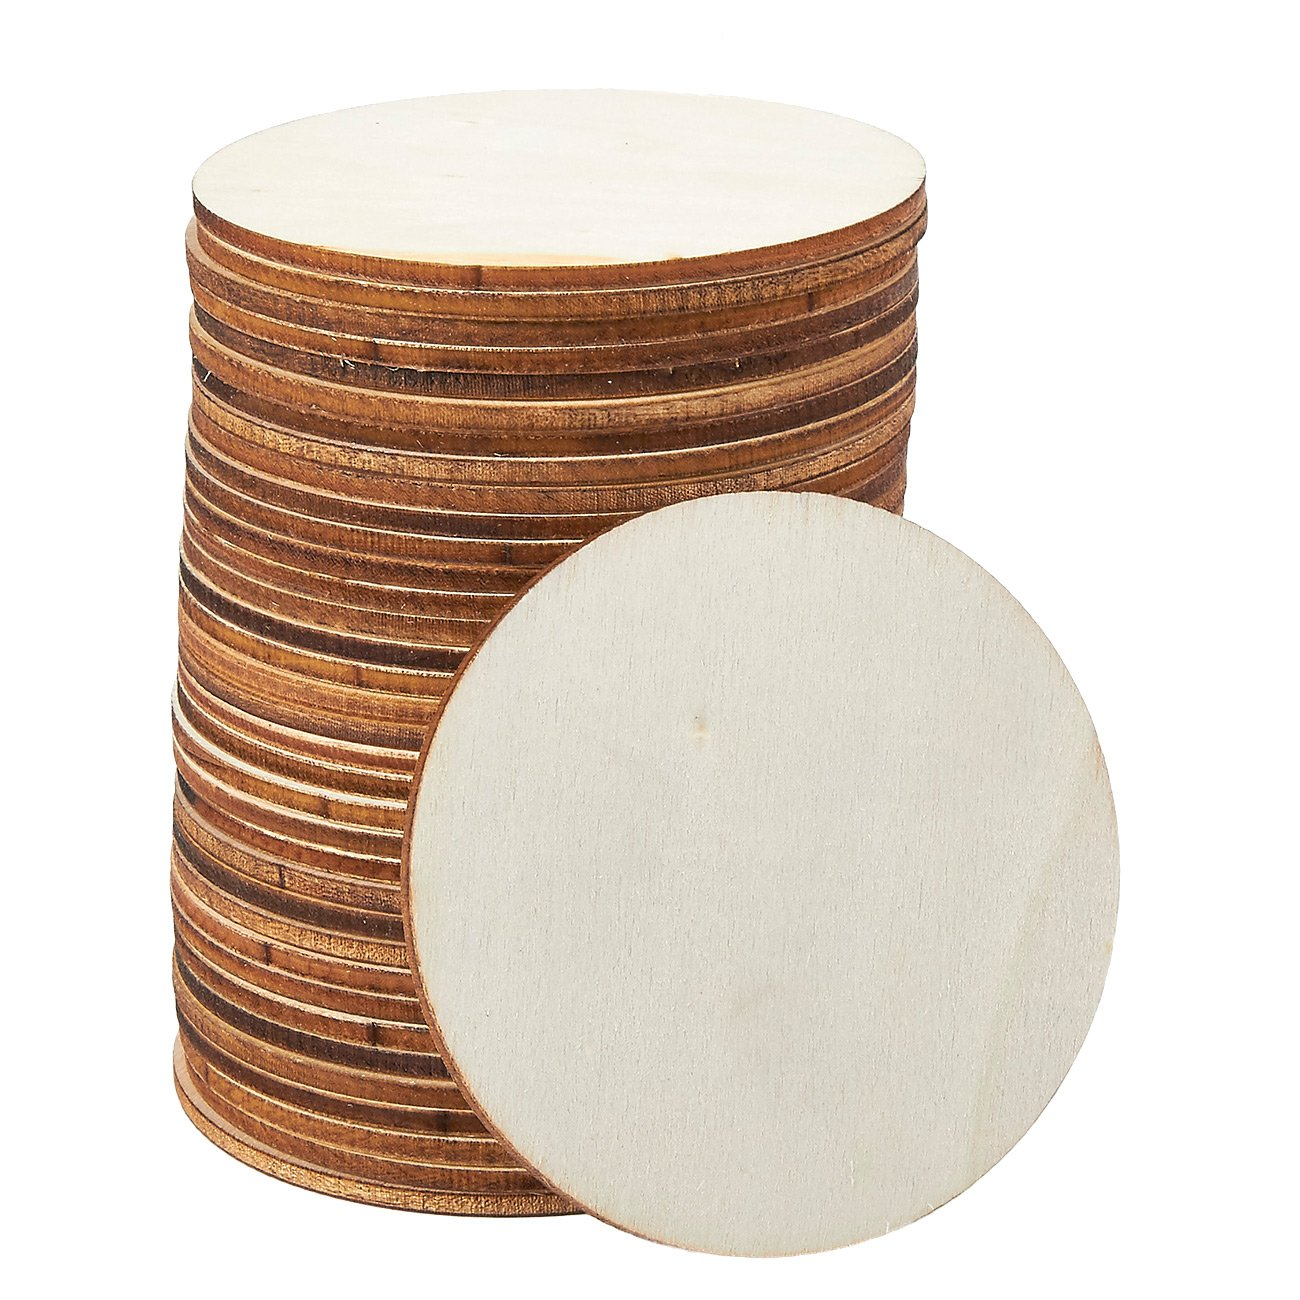 Unfinished Wood Slices - 100-Count Round Natural Rustic Wood Circles, Wooden Log Slices for DIY Craft, Wedding Decoration, Home DecorCenterpieces, 0.5-inch Diameter, 0.1 inch Thick Juvale